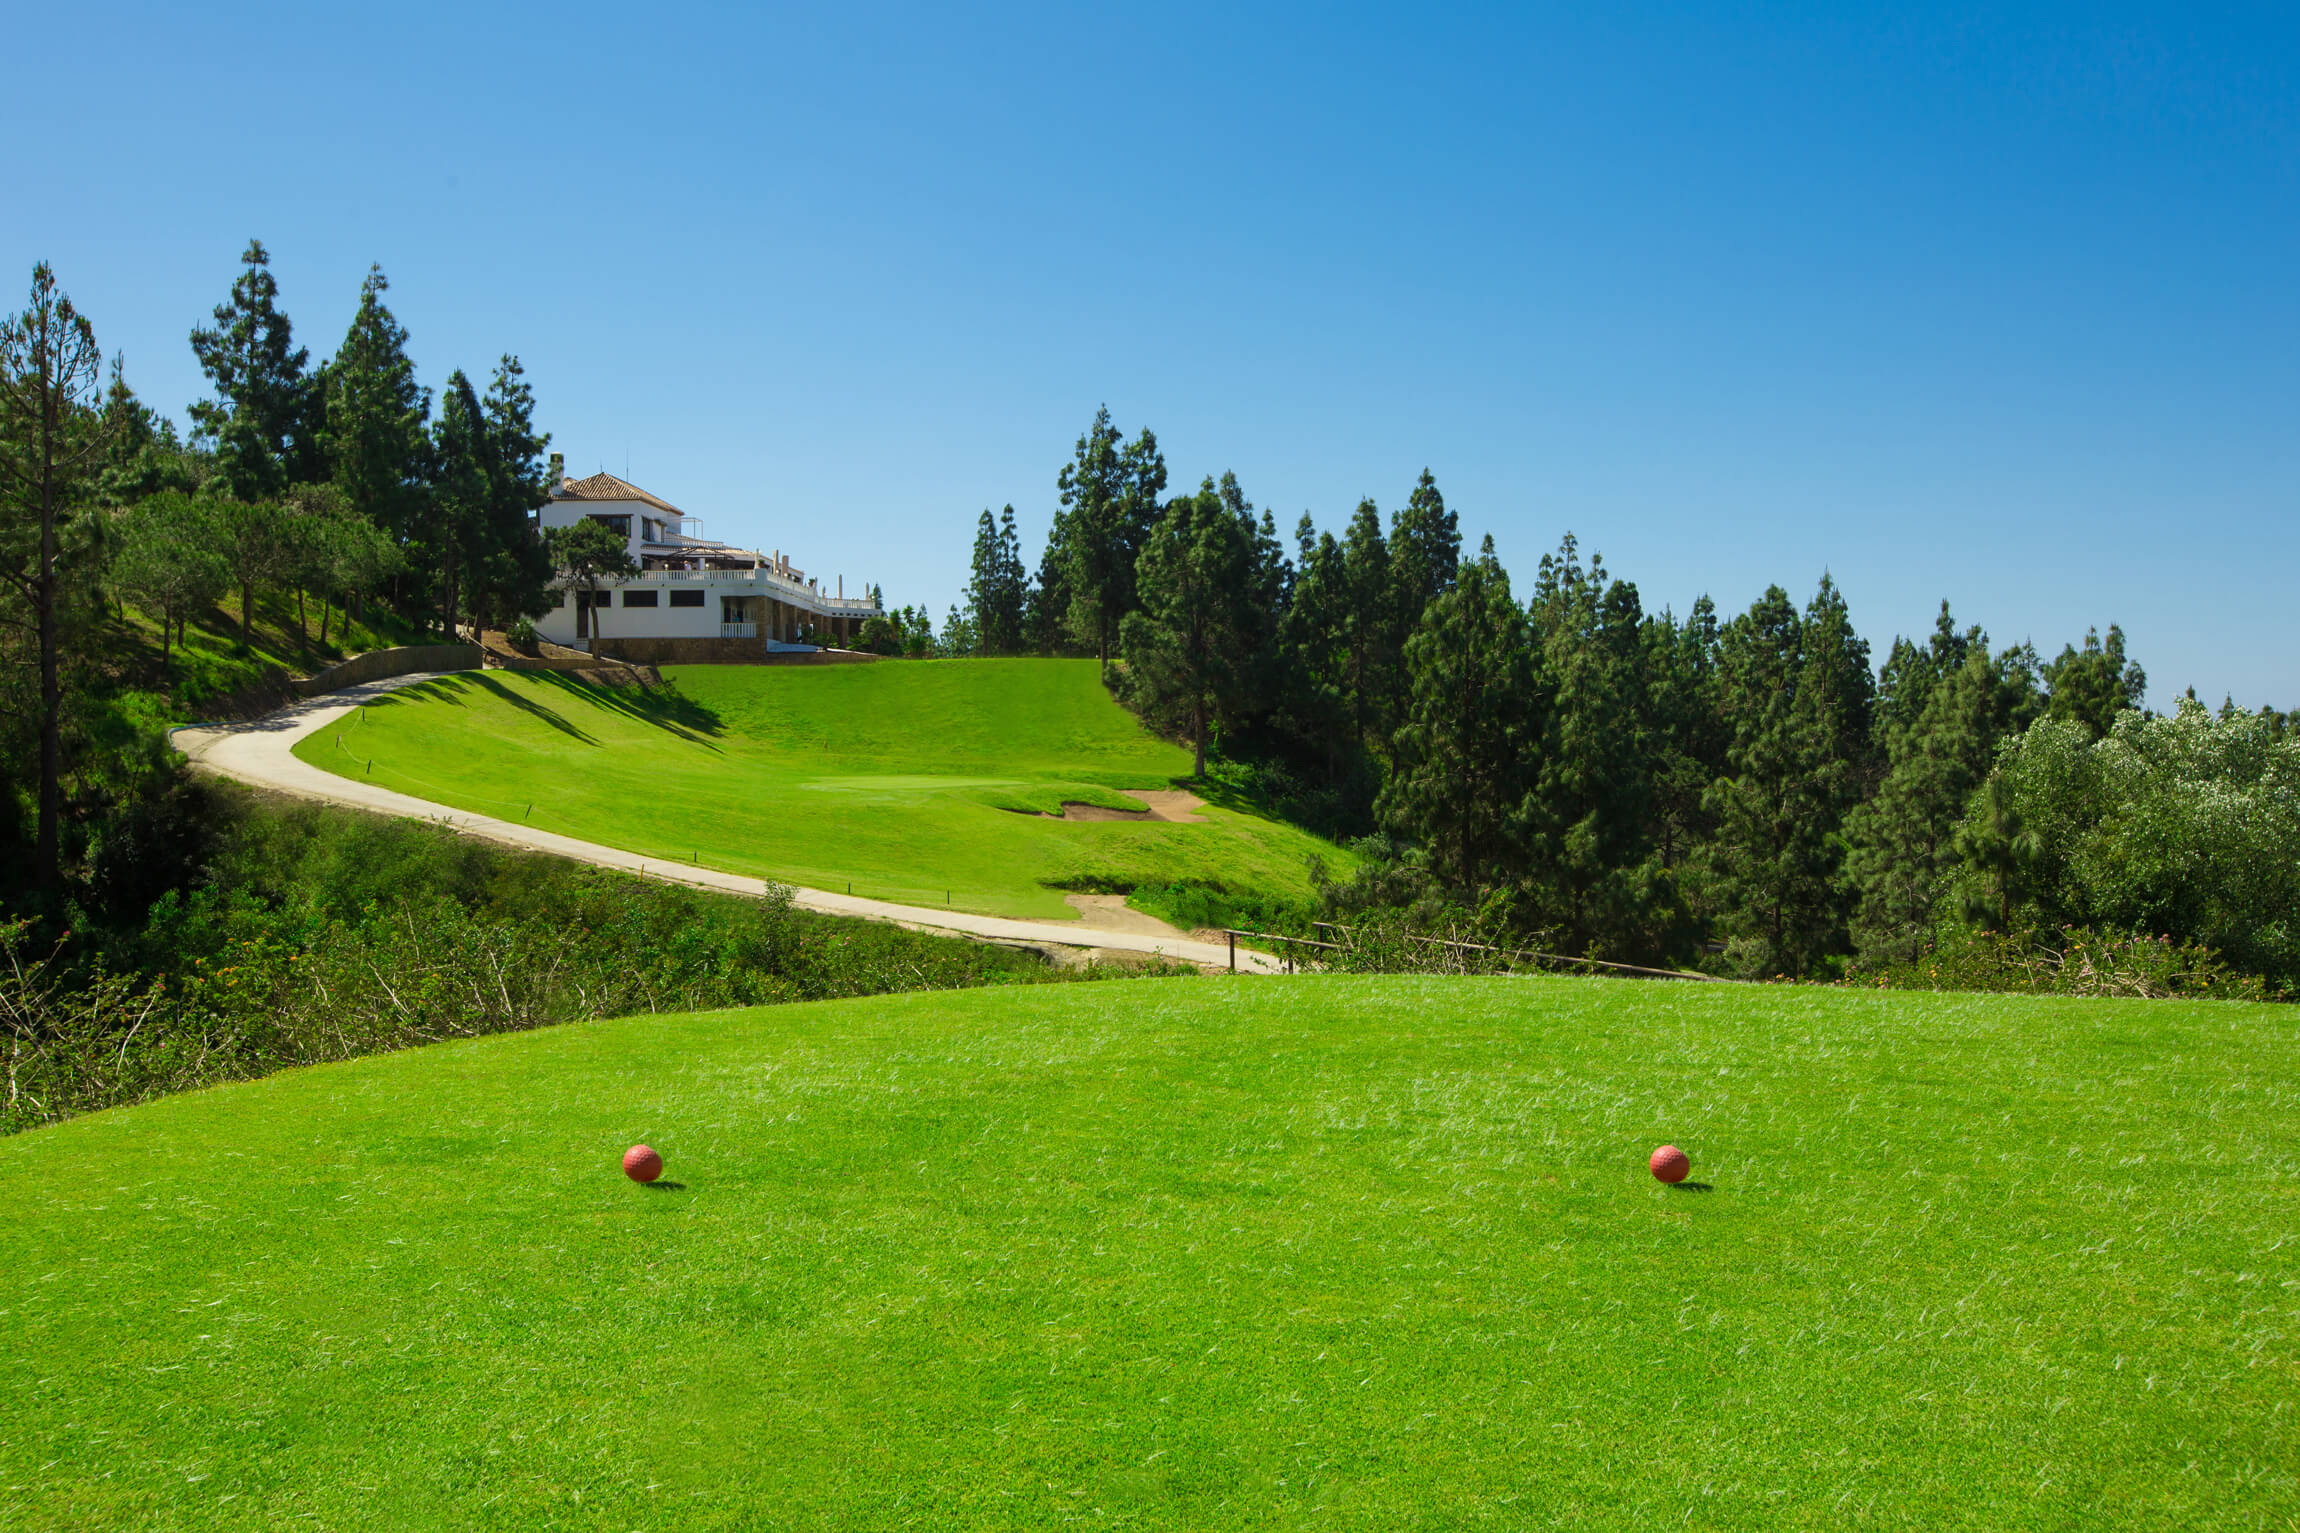 Chaparral Golf Club, Mijas, Costa del Sol, hoyo 18